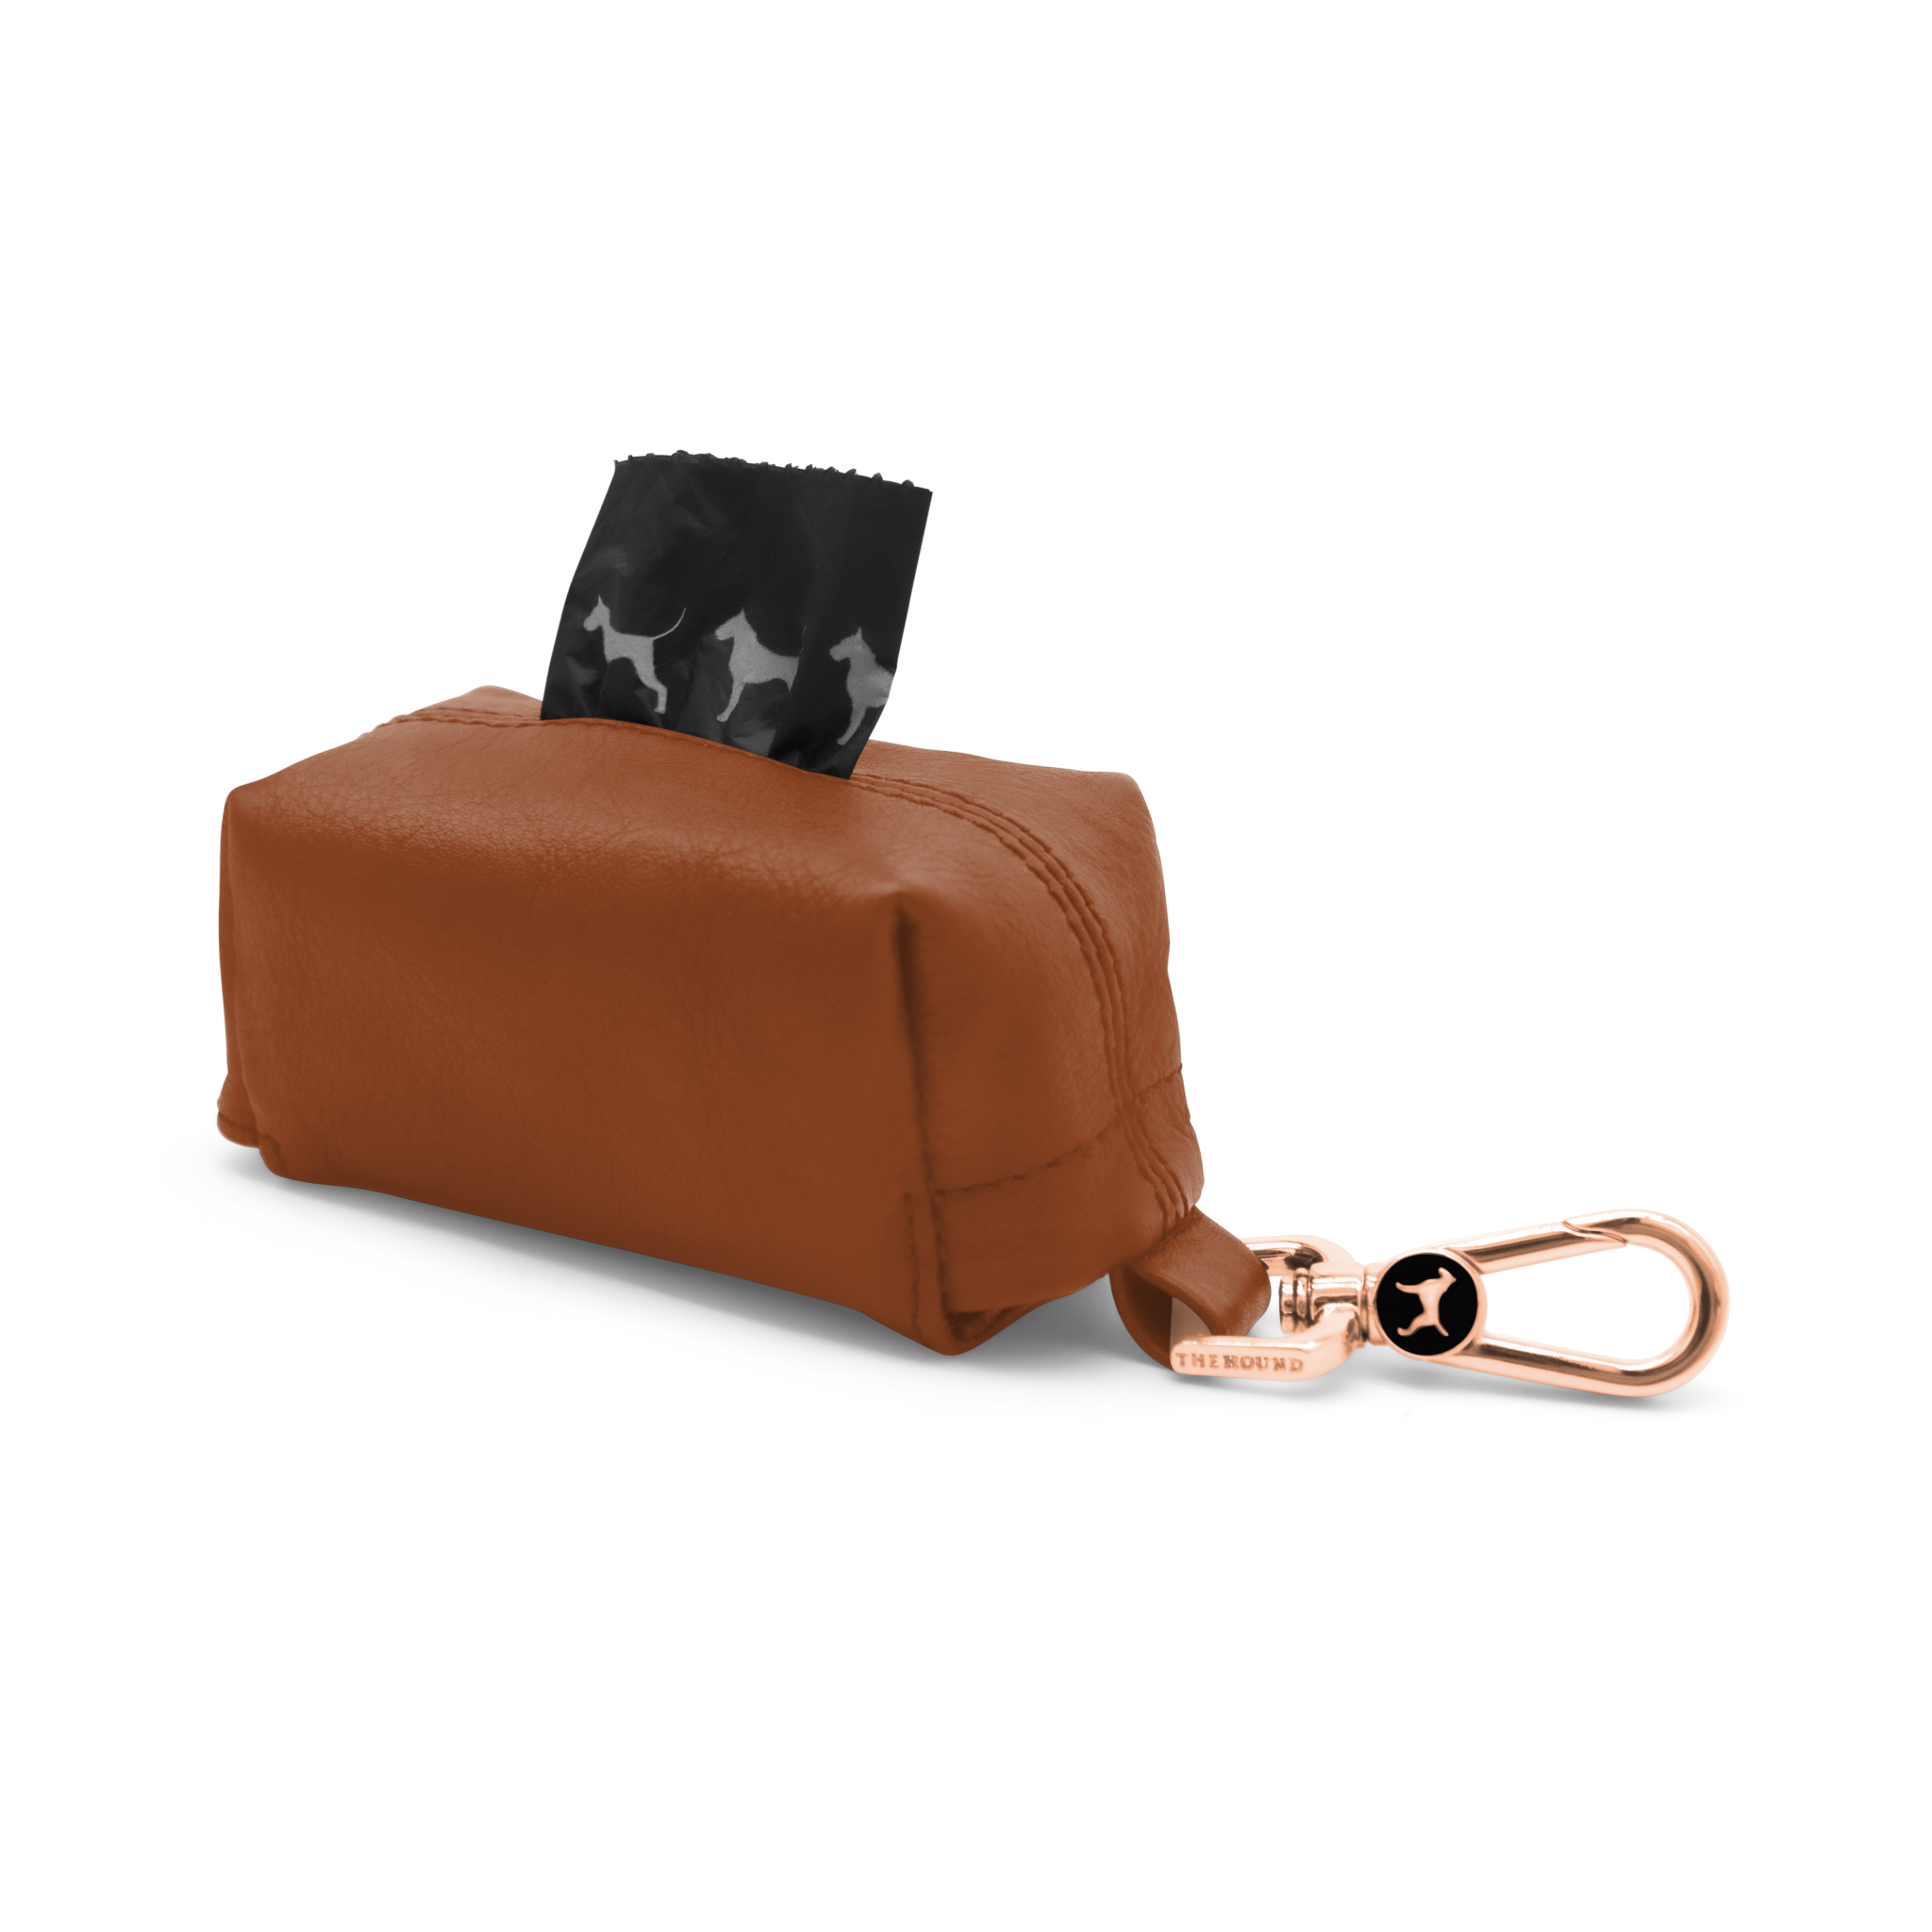 Leather Waste Bag Pouch